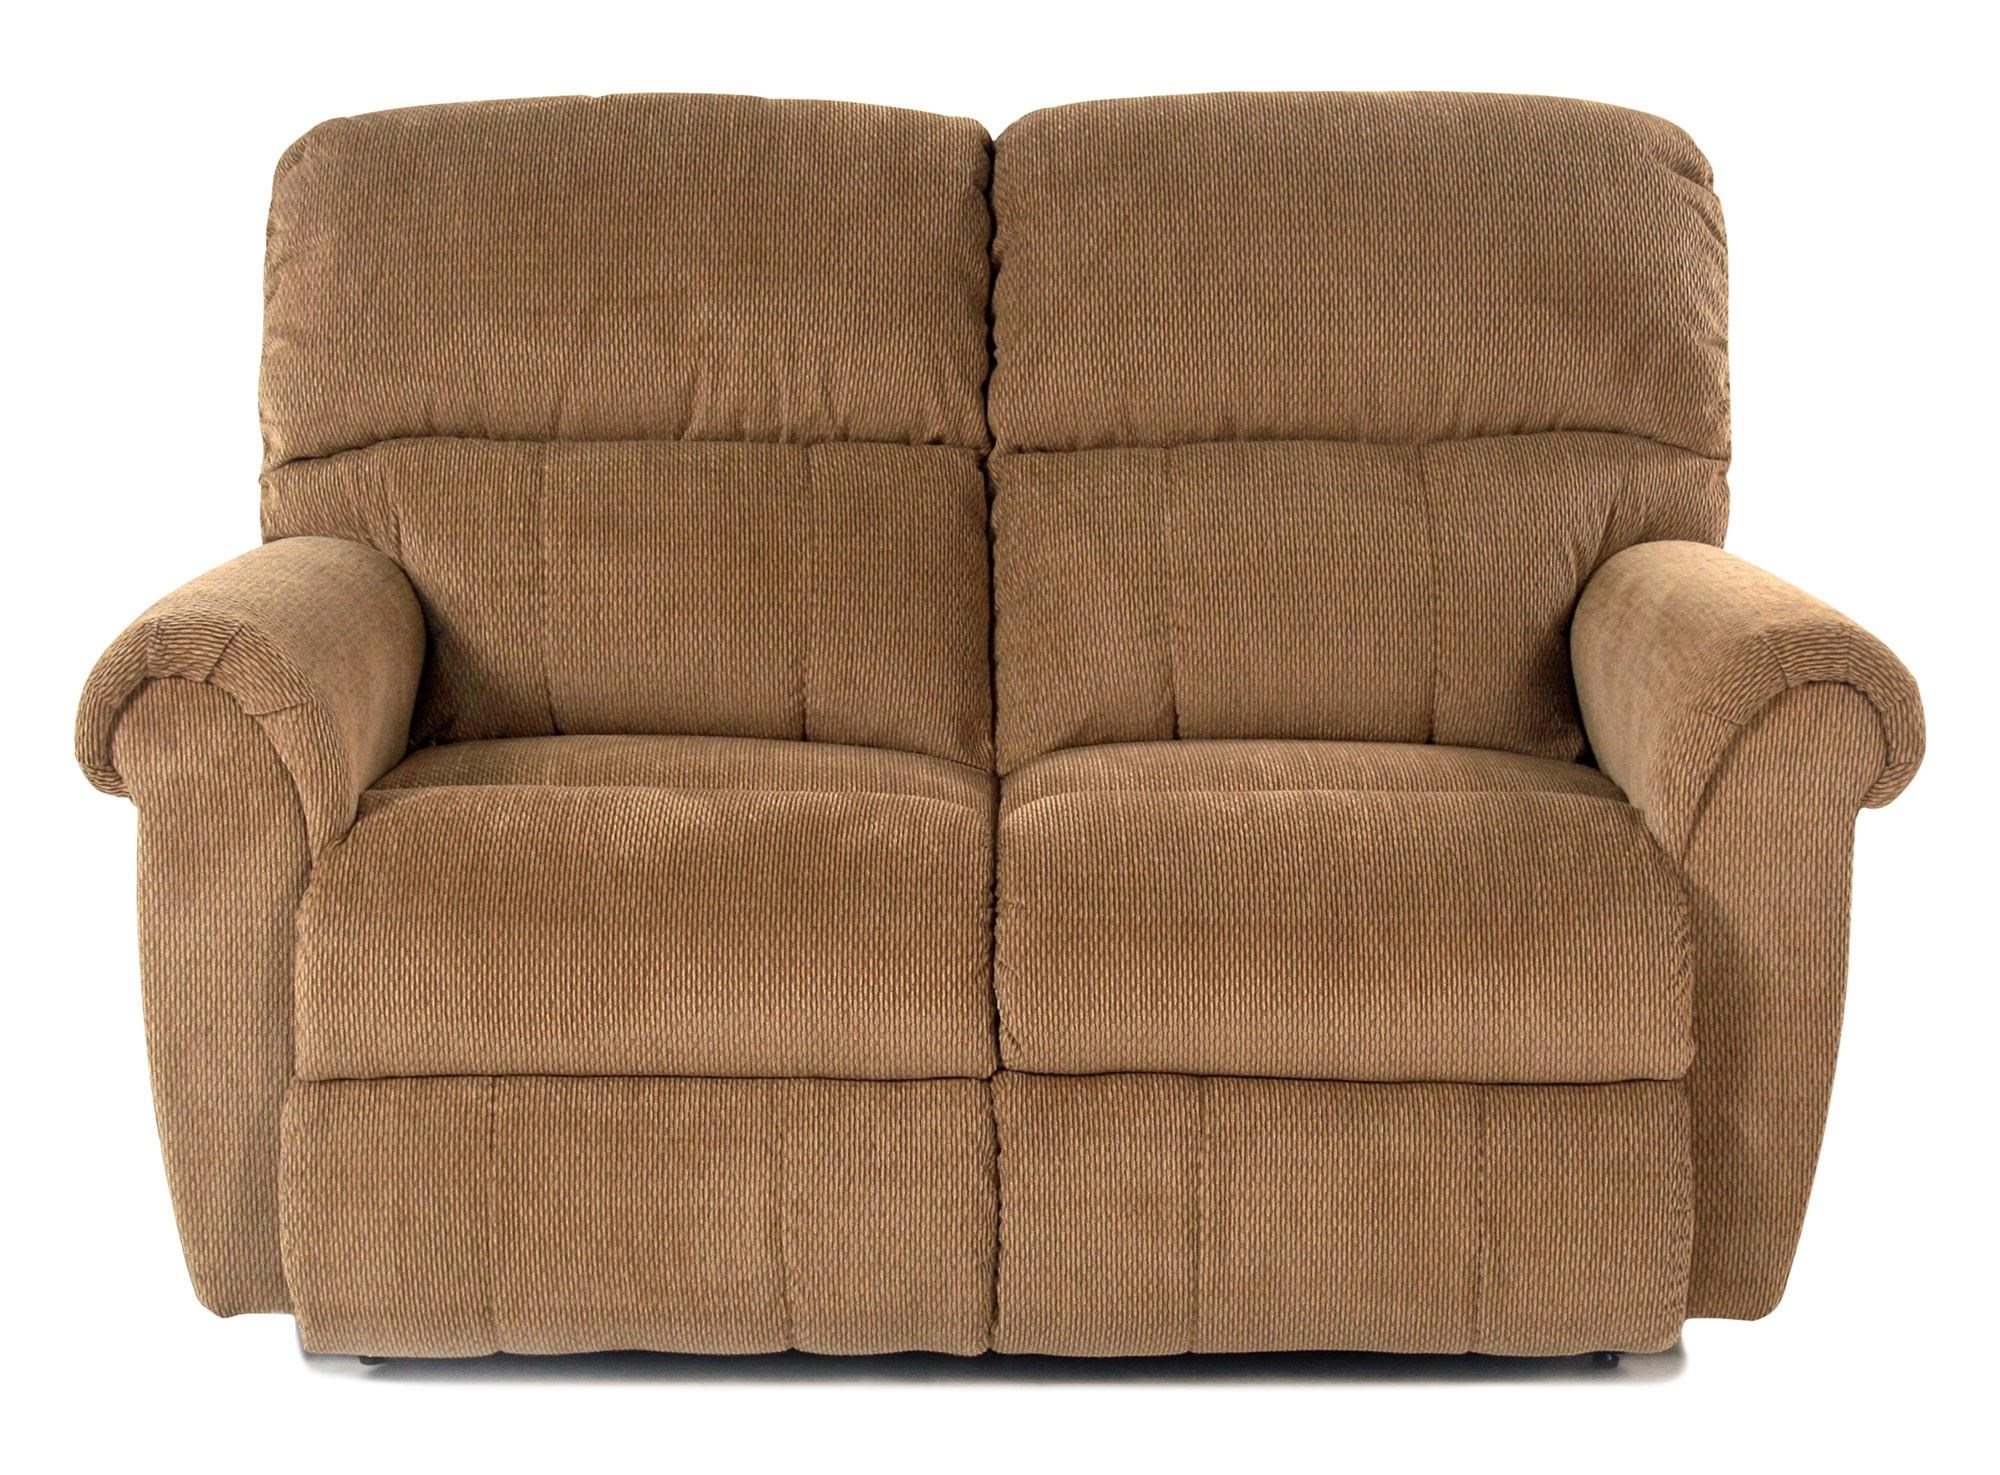 La-Z-Boy Zachary La-Z-Time® Full Reclining Loveseat - Item Number: 48P701-C108173